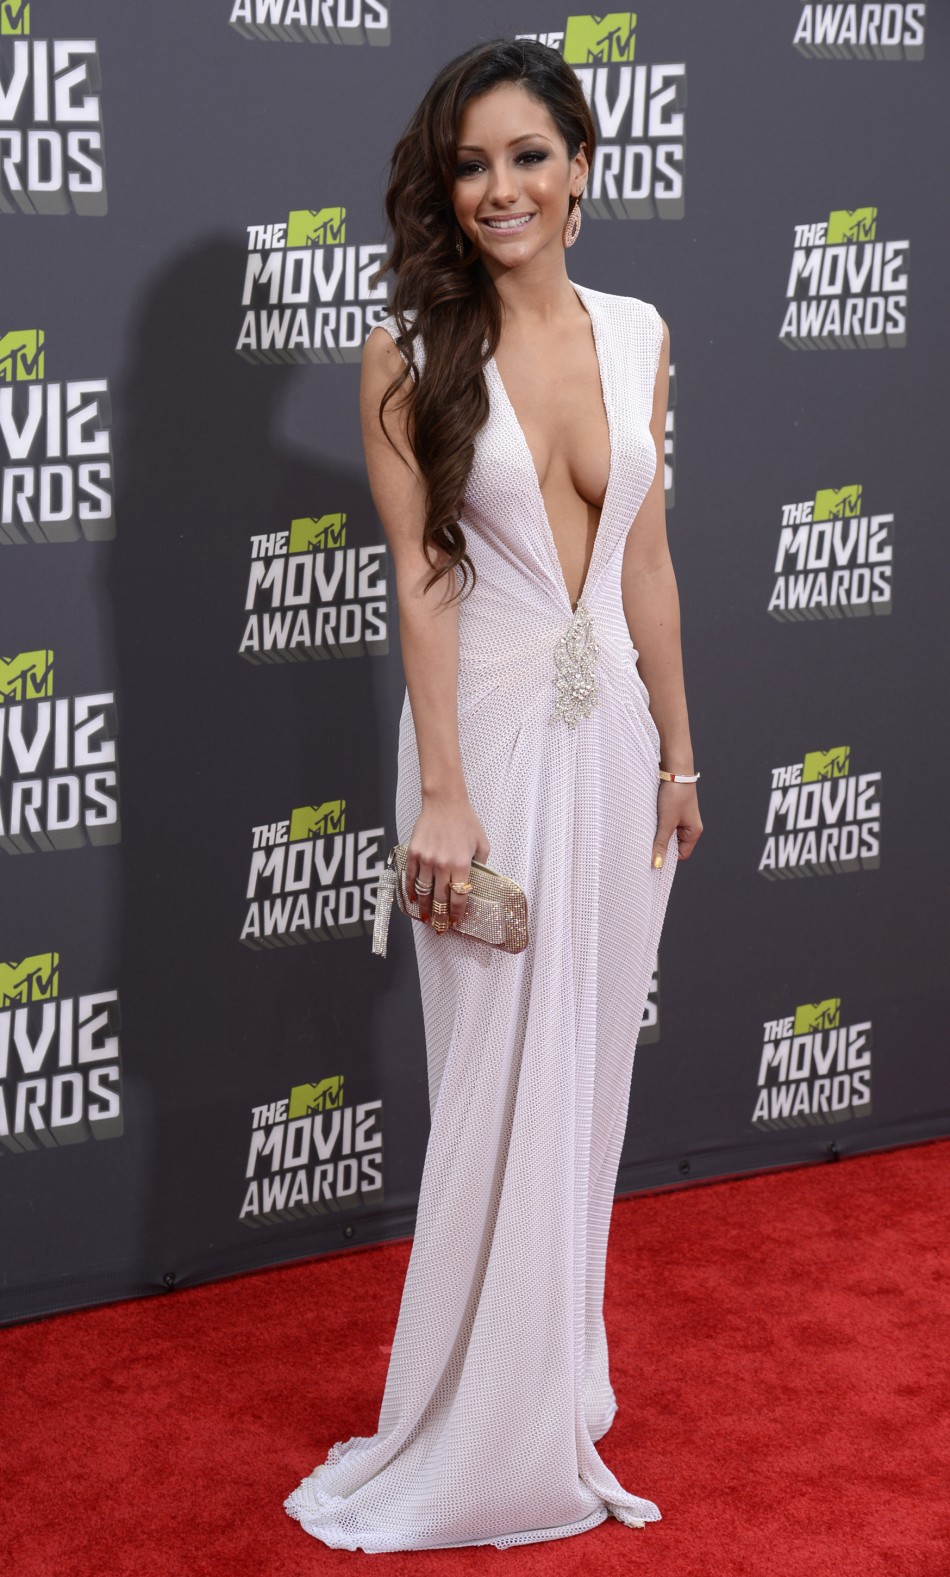 Reality television star Melanie Iglesias arrives at the 2013 MTV Movie Awards in Culver City, California April 14, 2013.